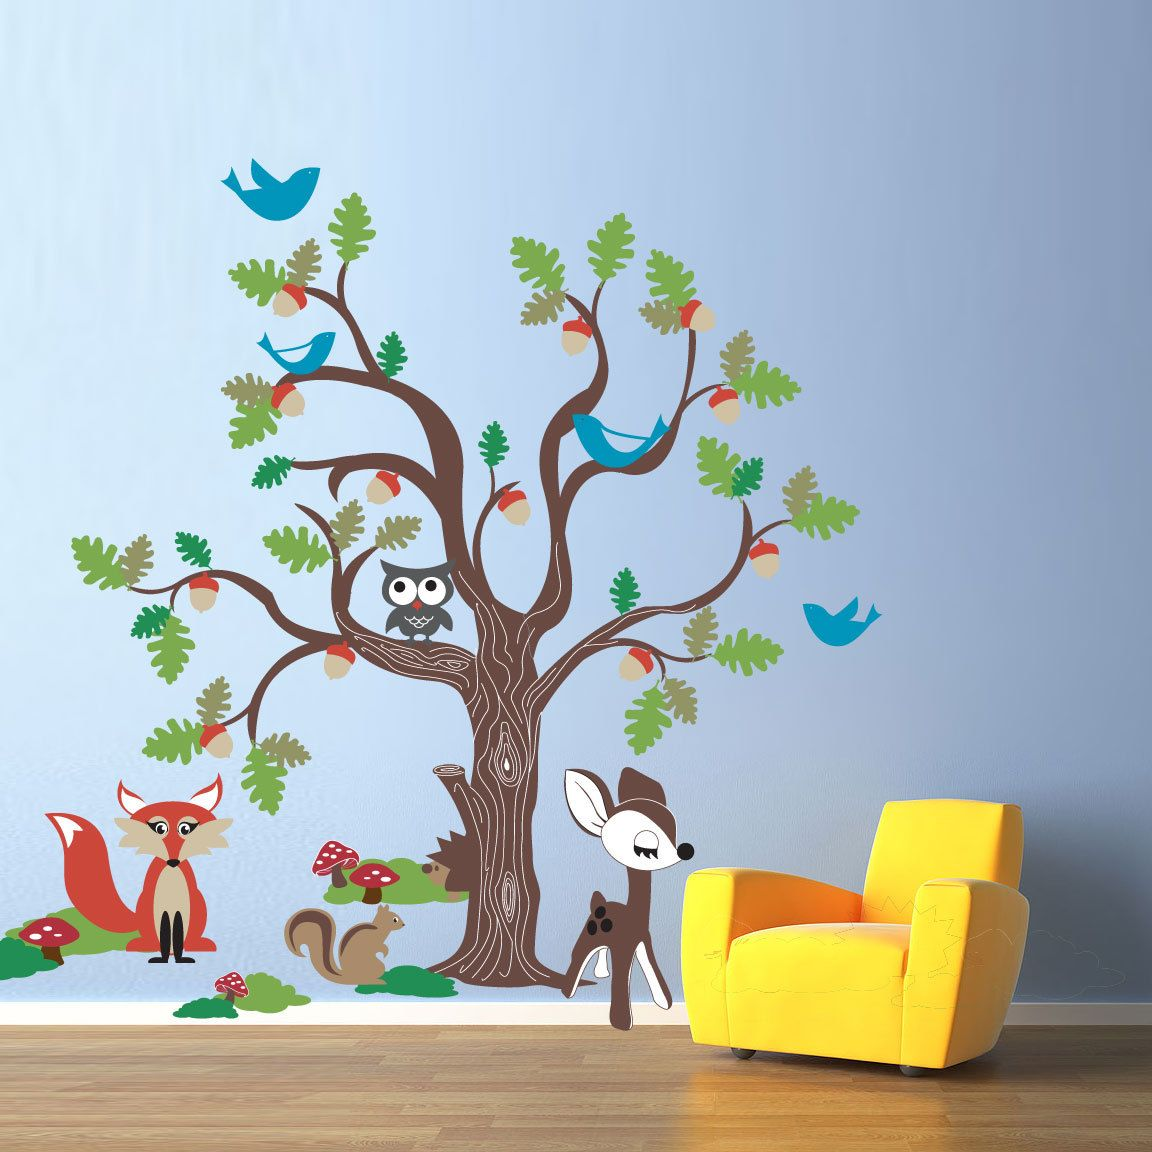 Vinyl Wall Decal Sticker Art Oak Tree And Woodland Animals - Vinyl wall decals animals